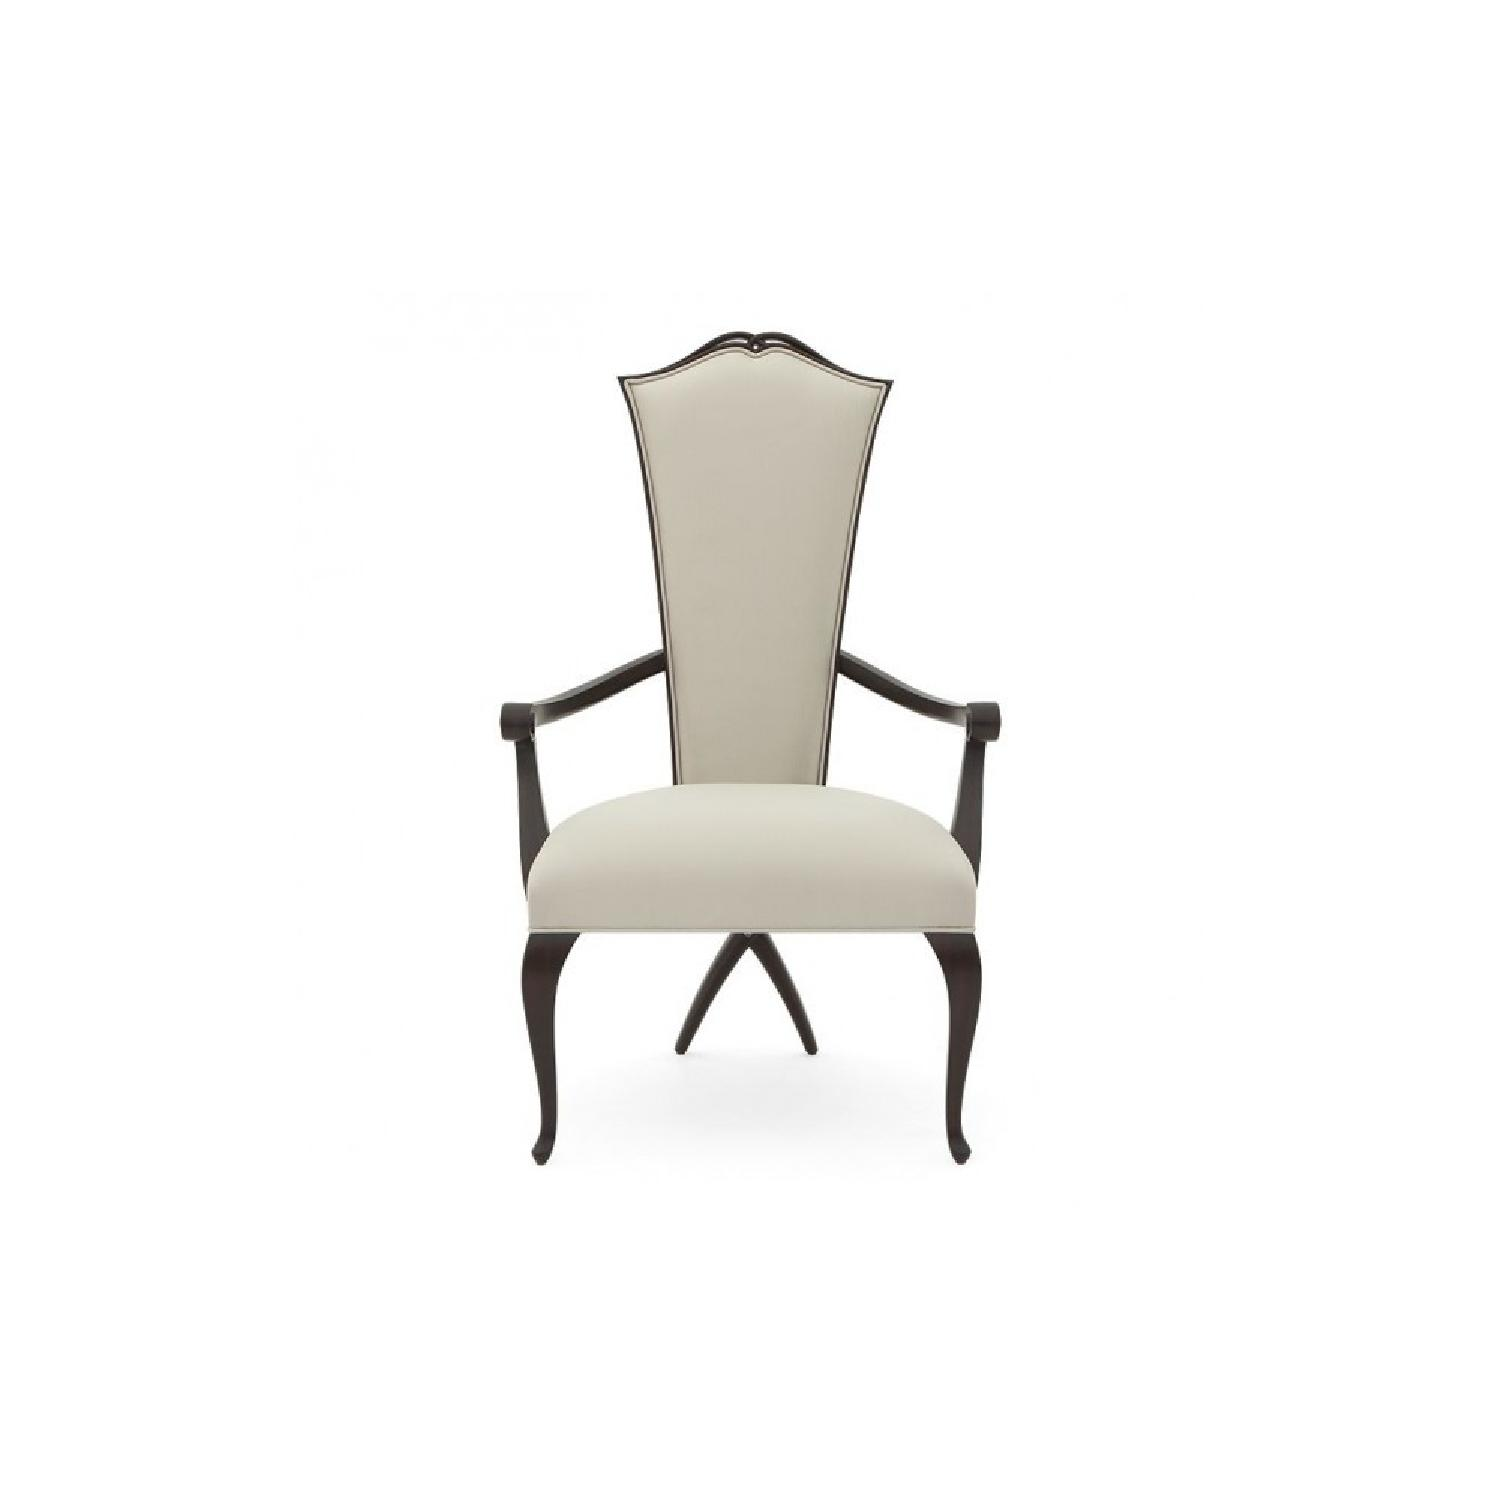 Christopher Guy Sadie Dining Chair - image-12